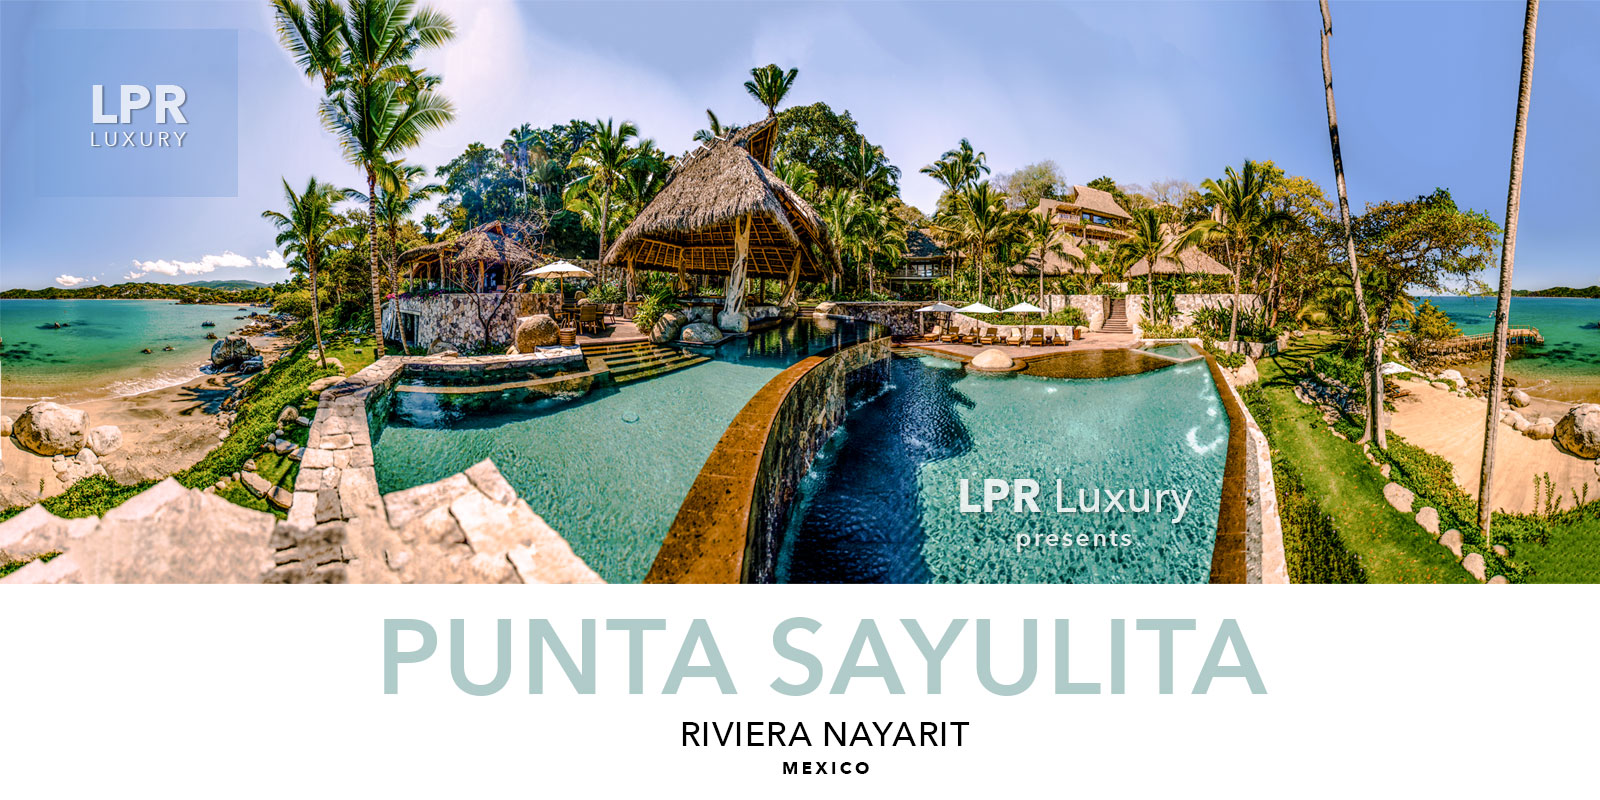 Punta Sayulita - Exquisite luxury jungle villas in bohemian Sayulita, Riviera Nayarit, Mexico